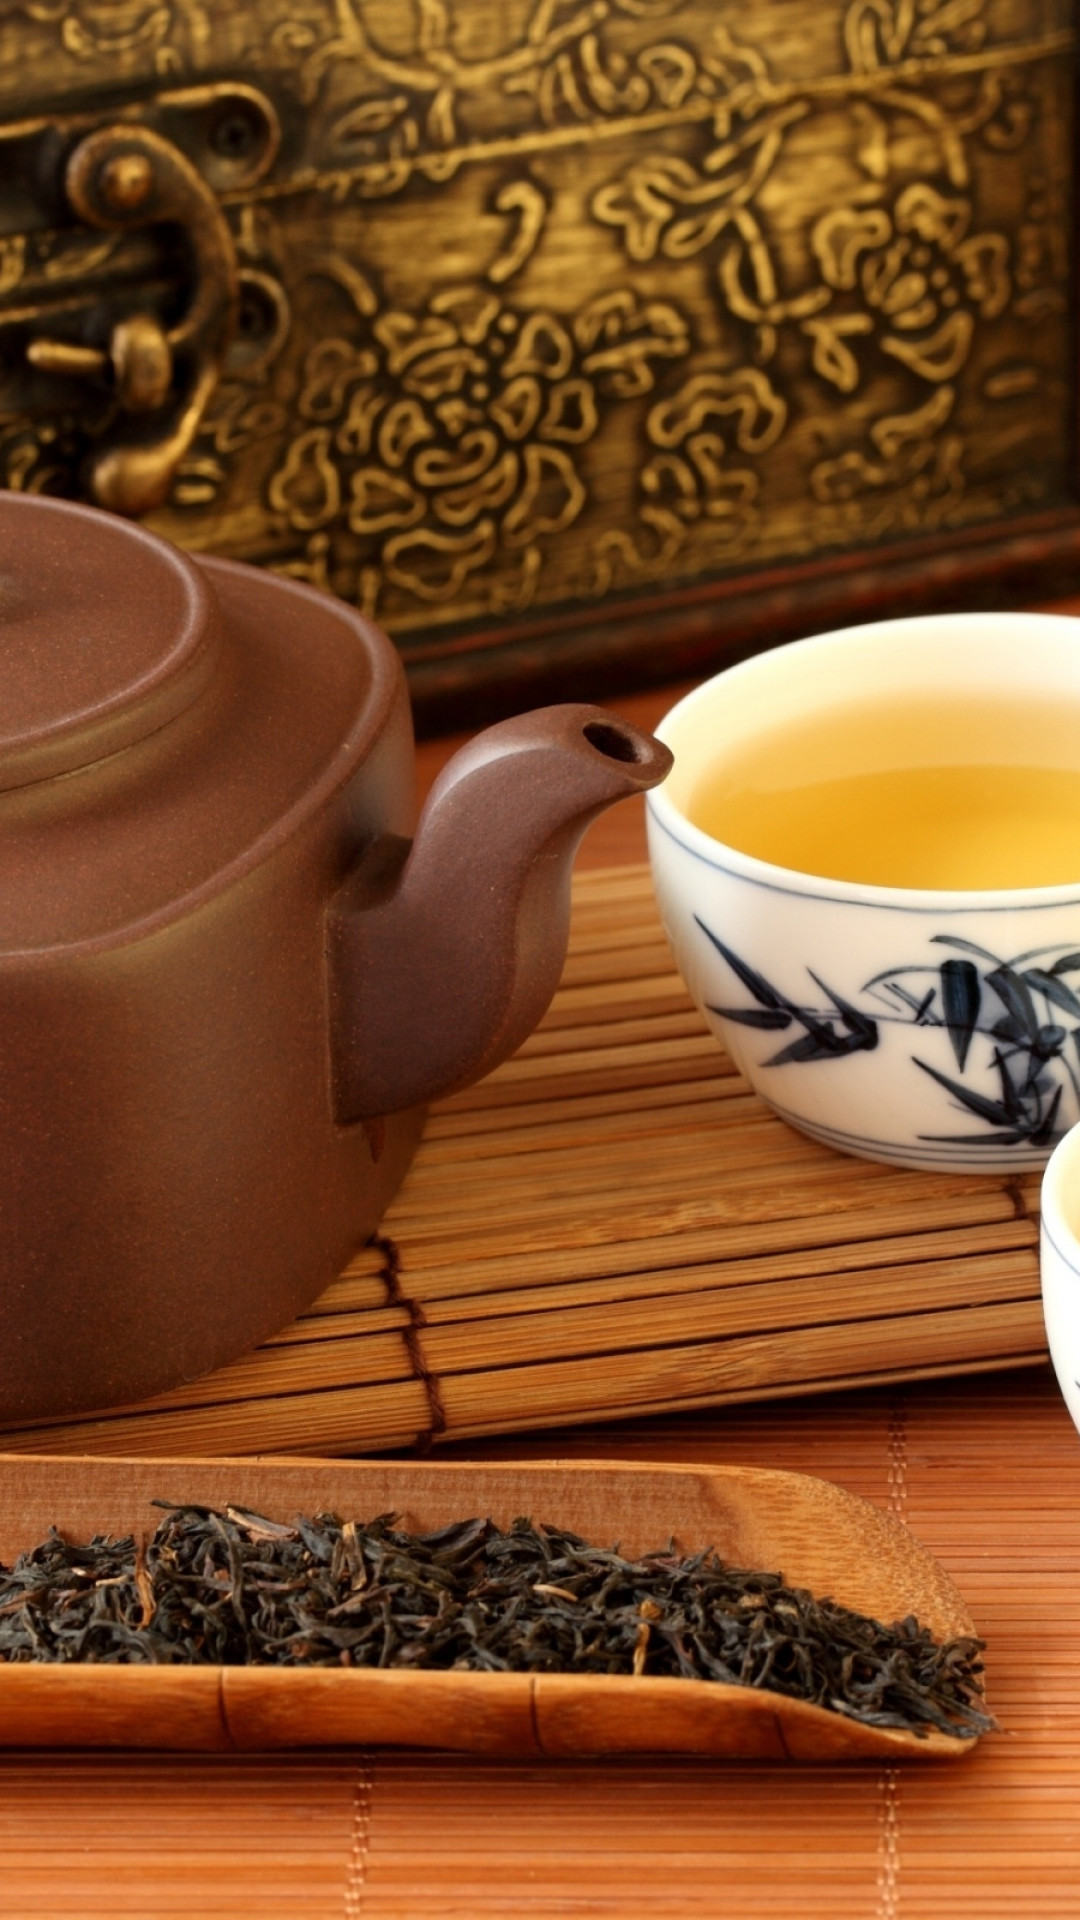 1080x1920  Wallpaper tea, teapot, tea leaves, service, chinese, hieroglyphs,  chest